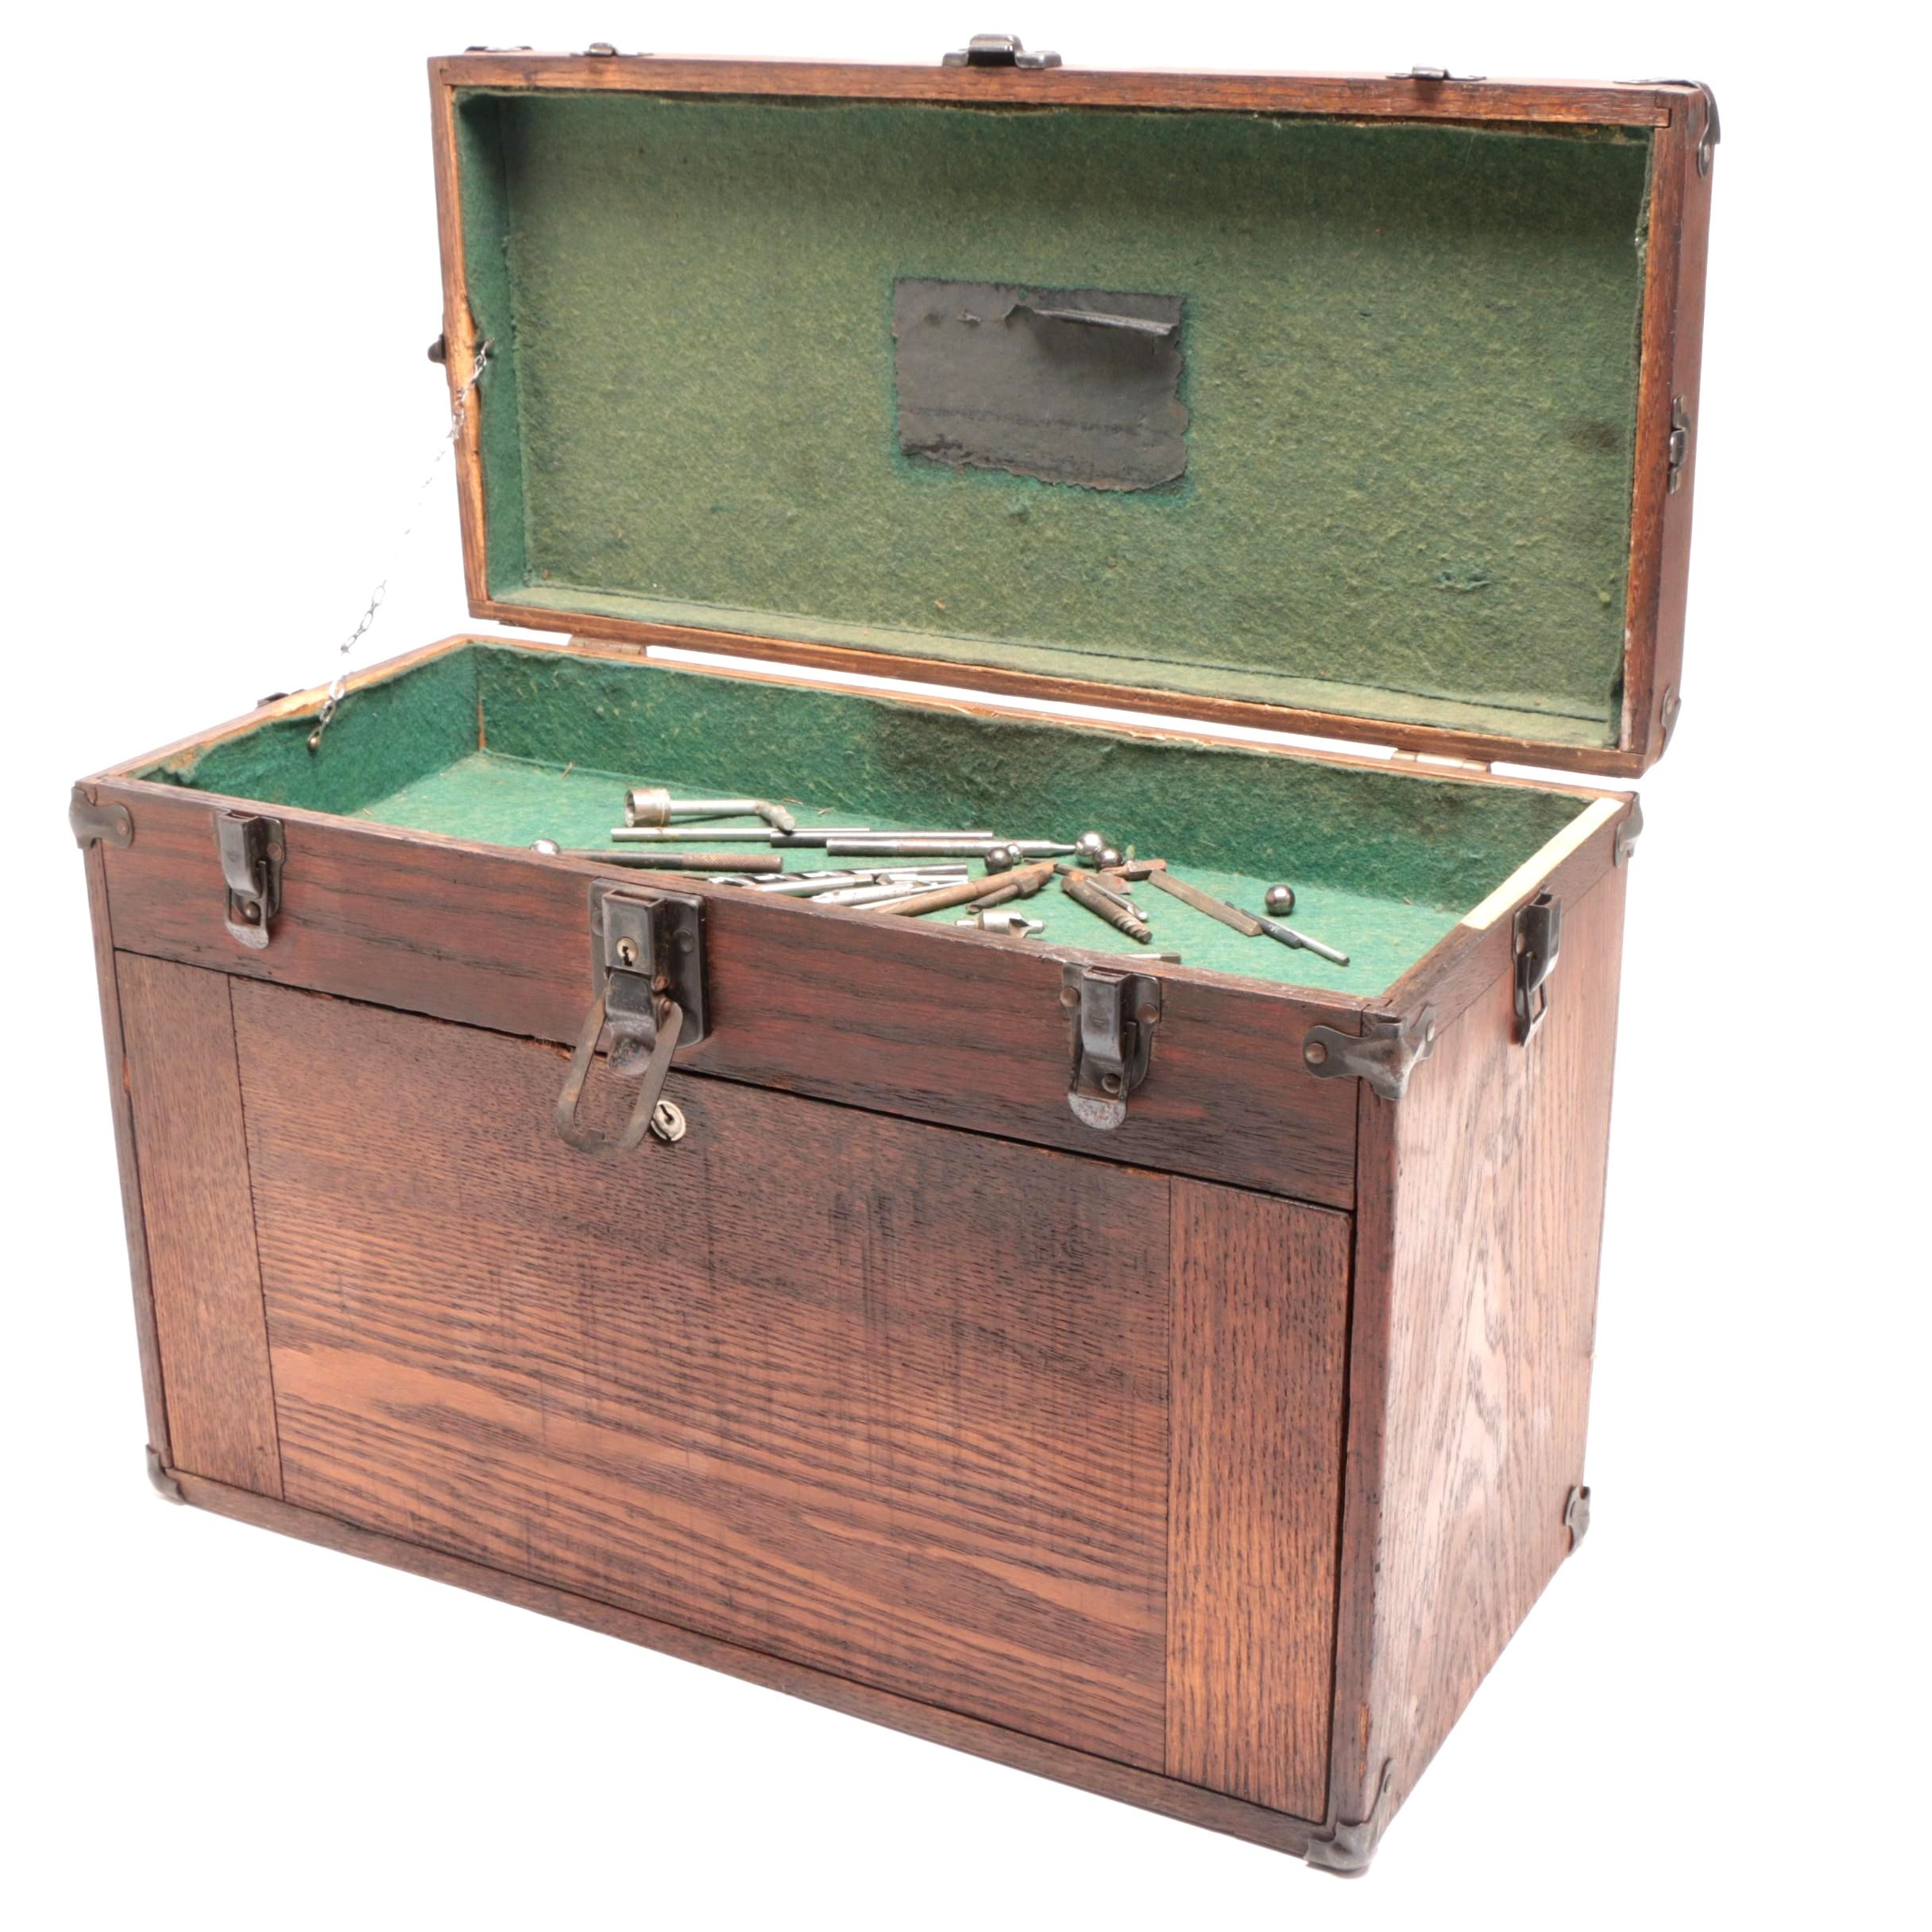 Machinist's Chest by George Scherr With Tools, Early 20th Century